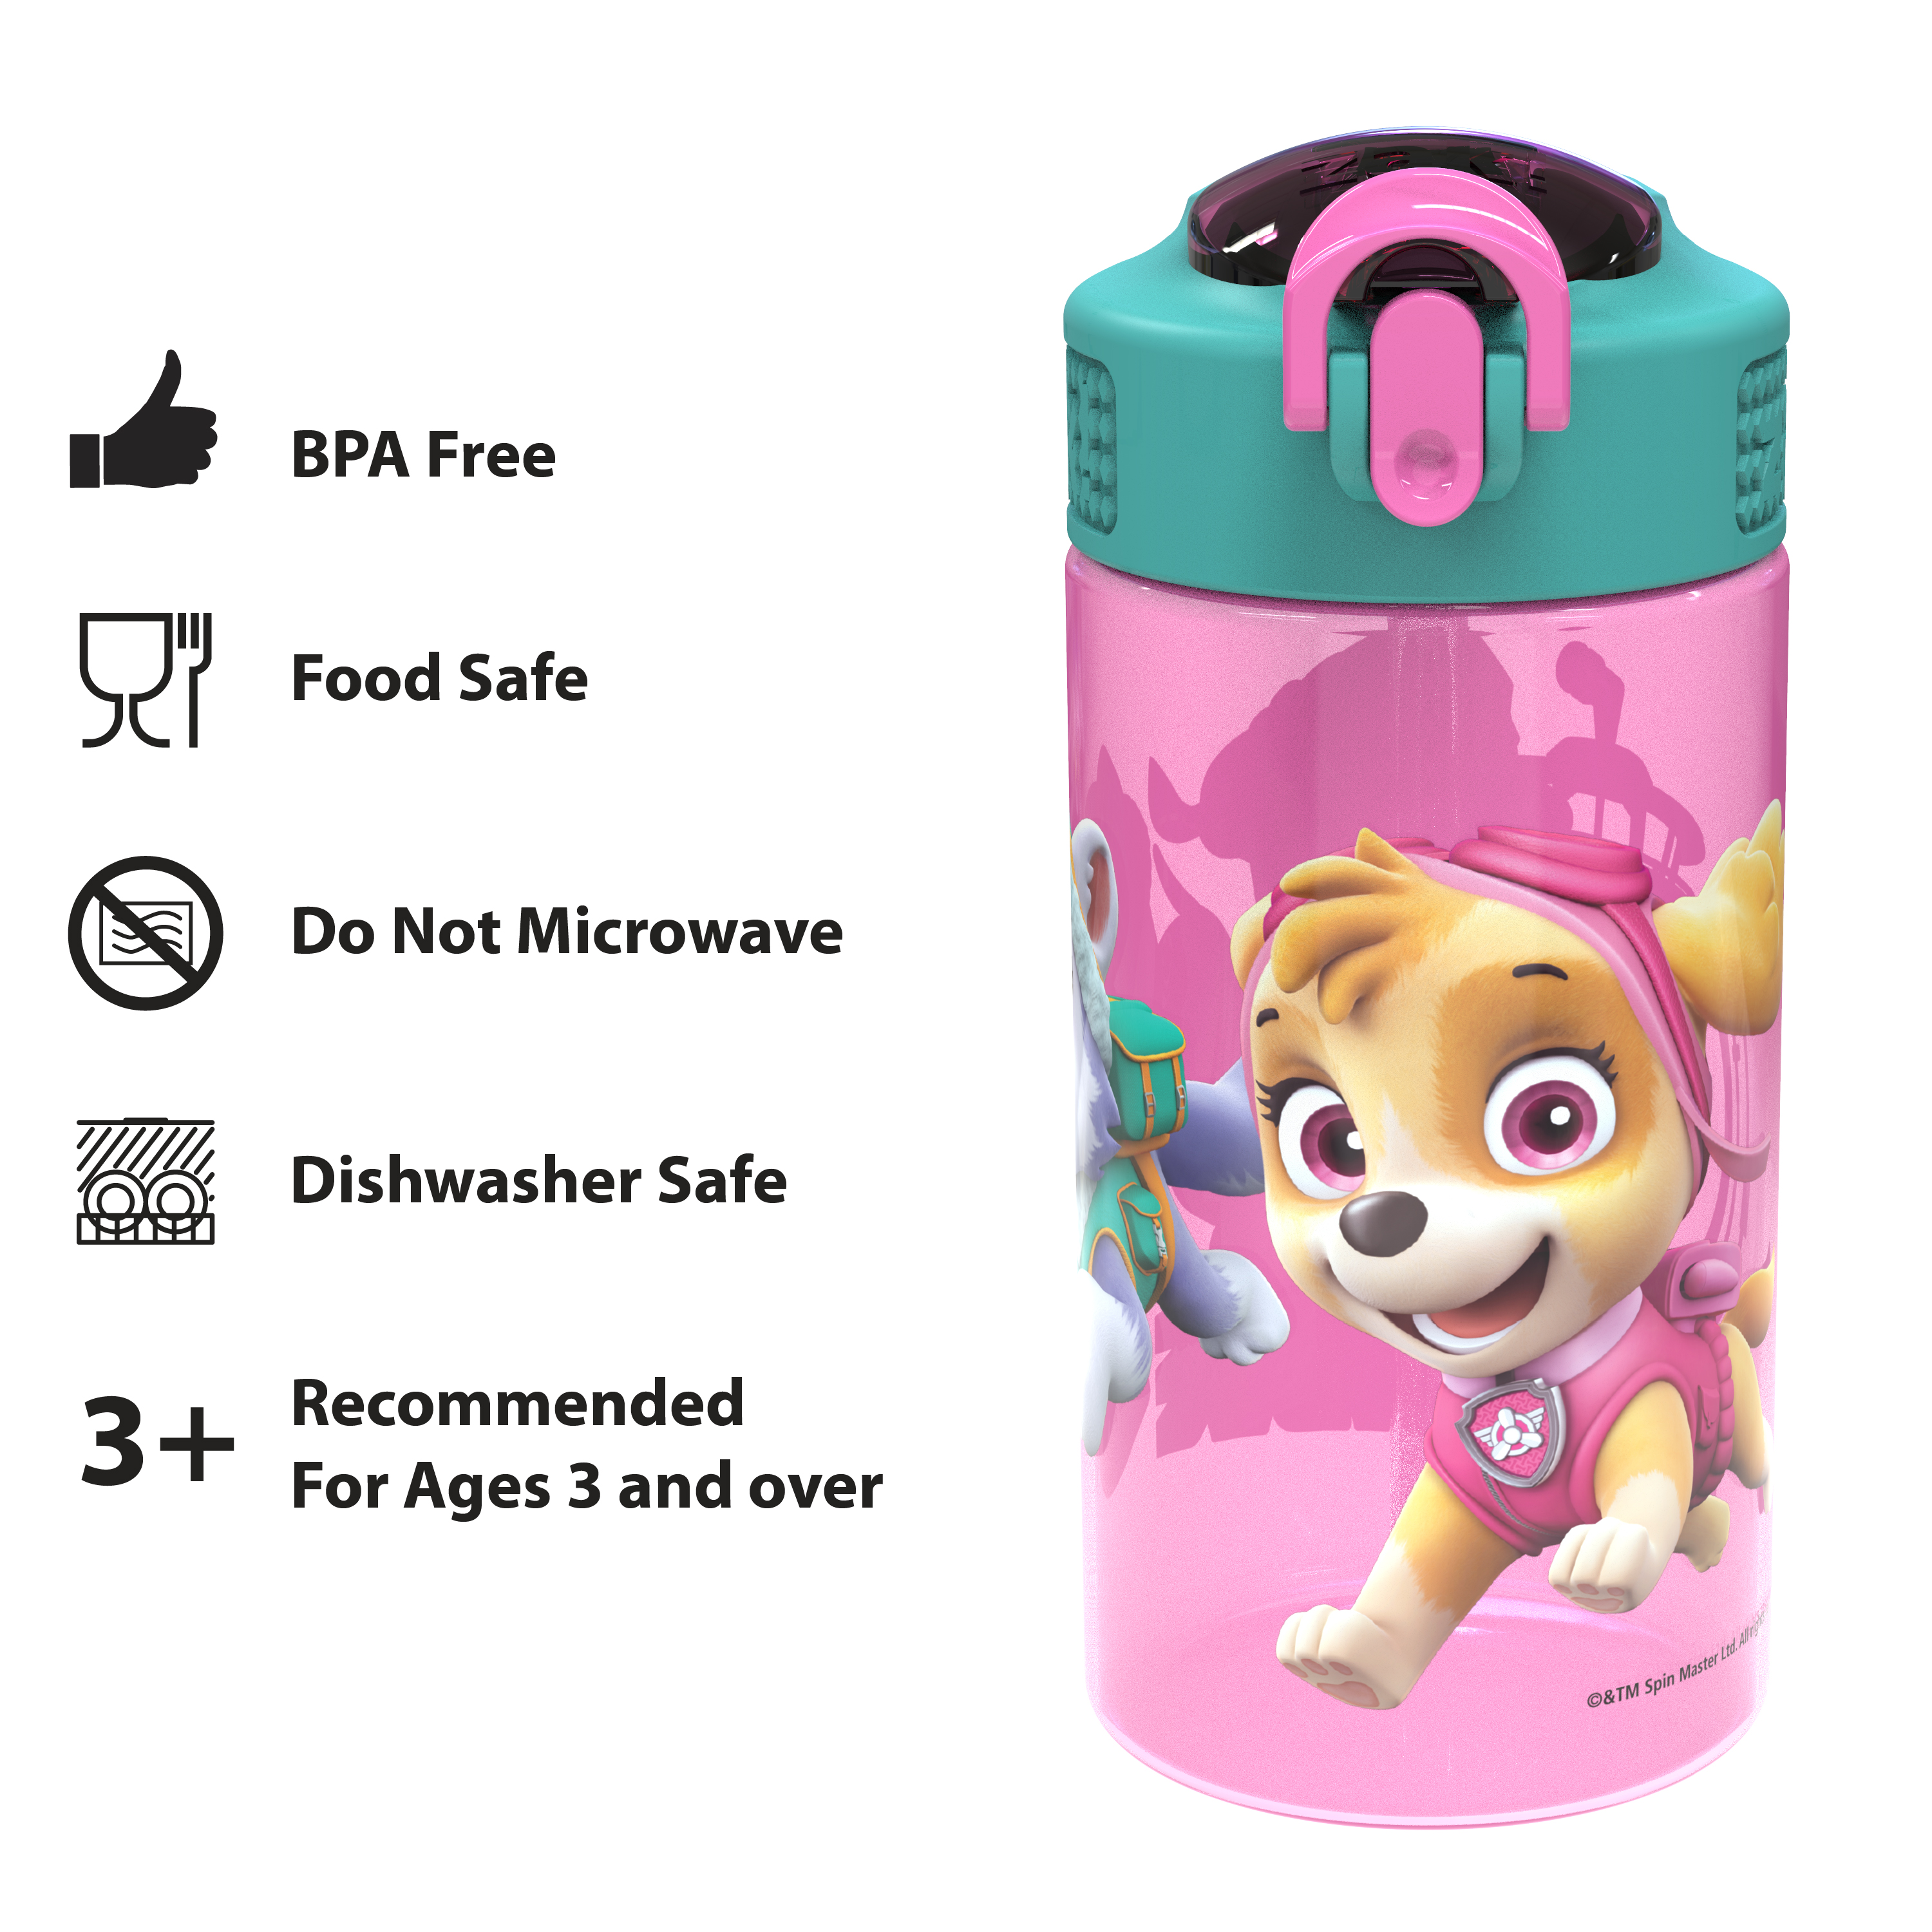 Paw Patrol 16 ounce Reusable Plastic Water Bottle with Straw, Skye, 2-piece set slideshow image 4